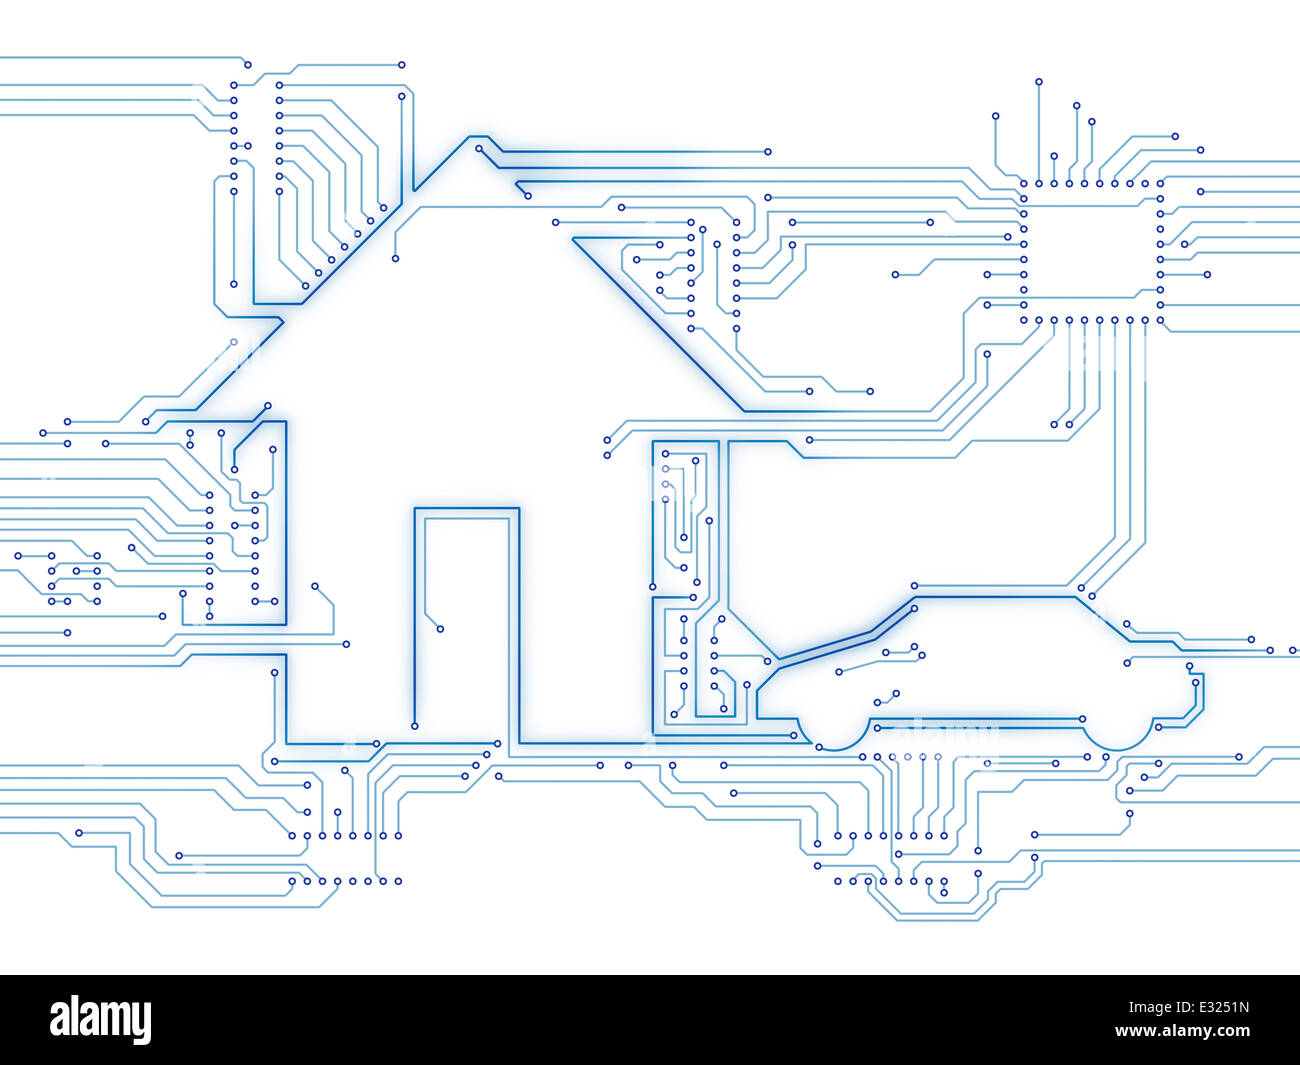 Connected house and electric car future home automation household technology conceptual illustration isolated on - Stock Image